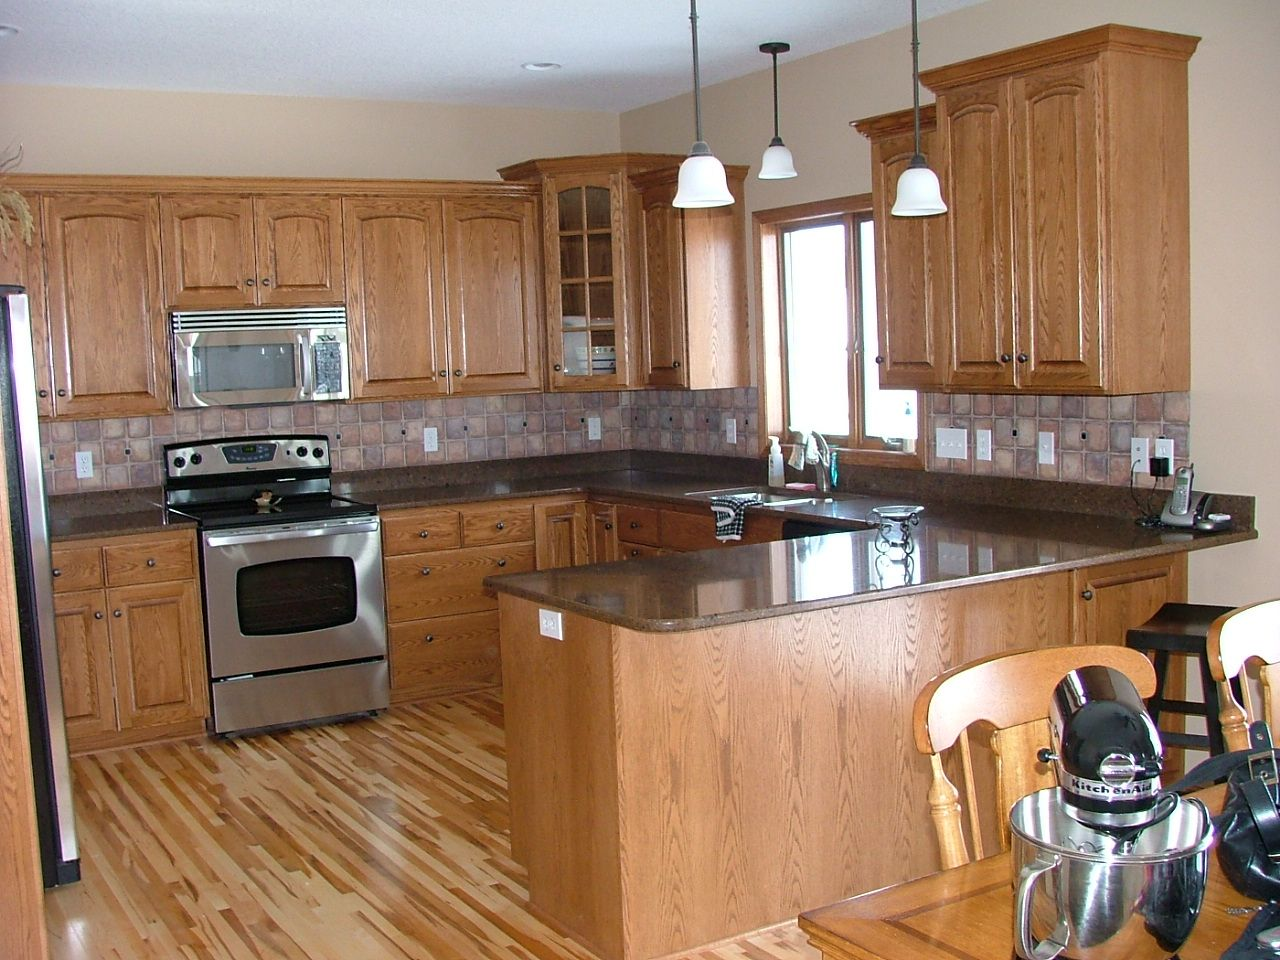 Oak Cabinets Backsplash Black Granite Counter Oak Hickory Oak Wood Kitchen